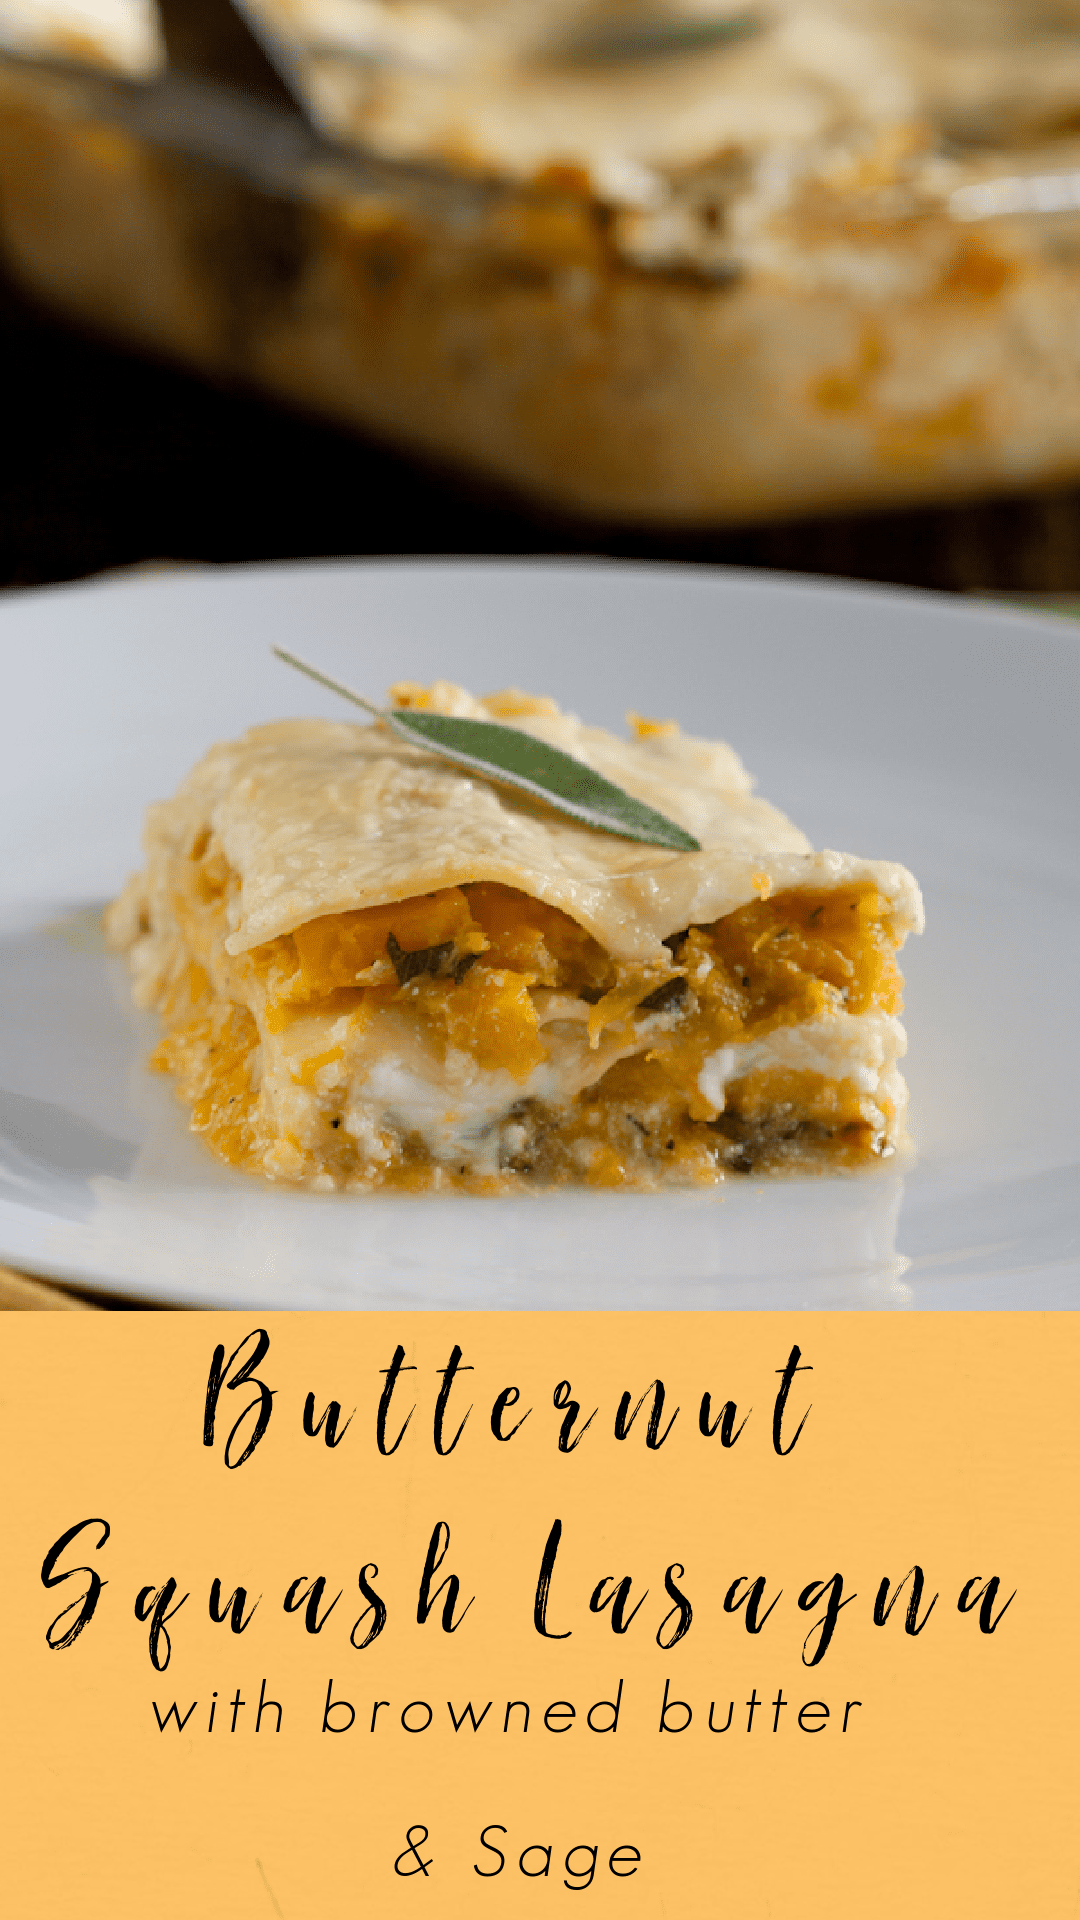 Butternut Squash Lasagna with Browned Butter and Sage.